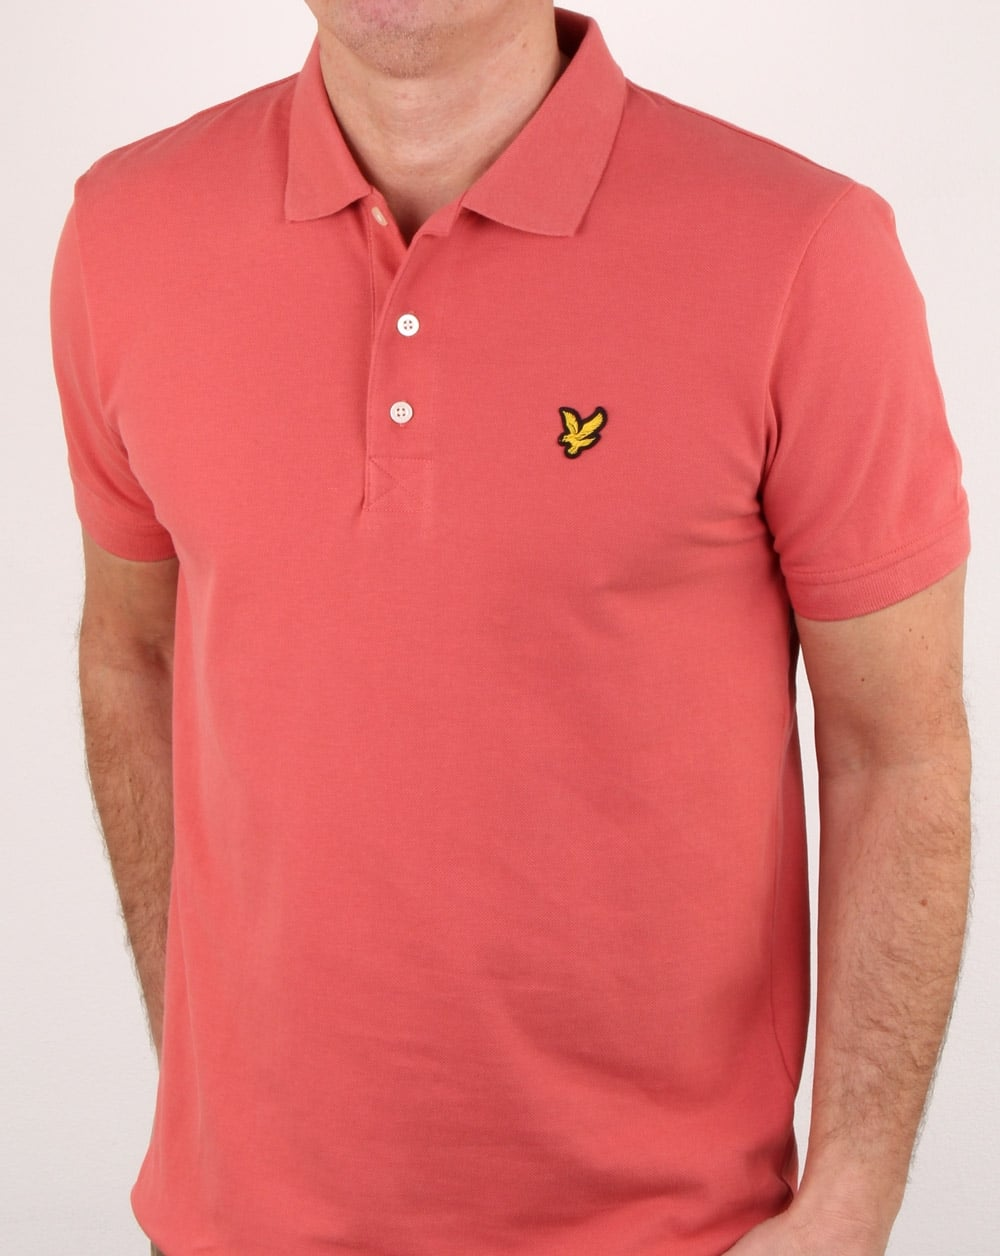 lyle and scott polo shirt pink. Black Bedroom Furniture Sets. Home Design Ideas